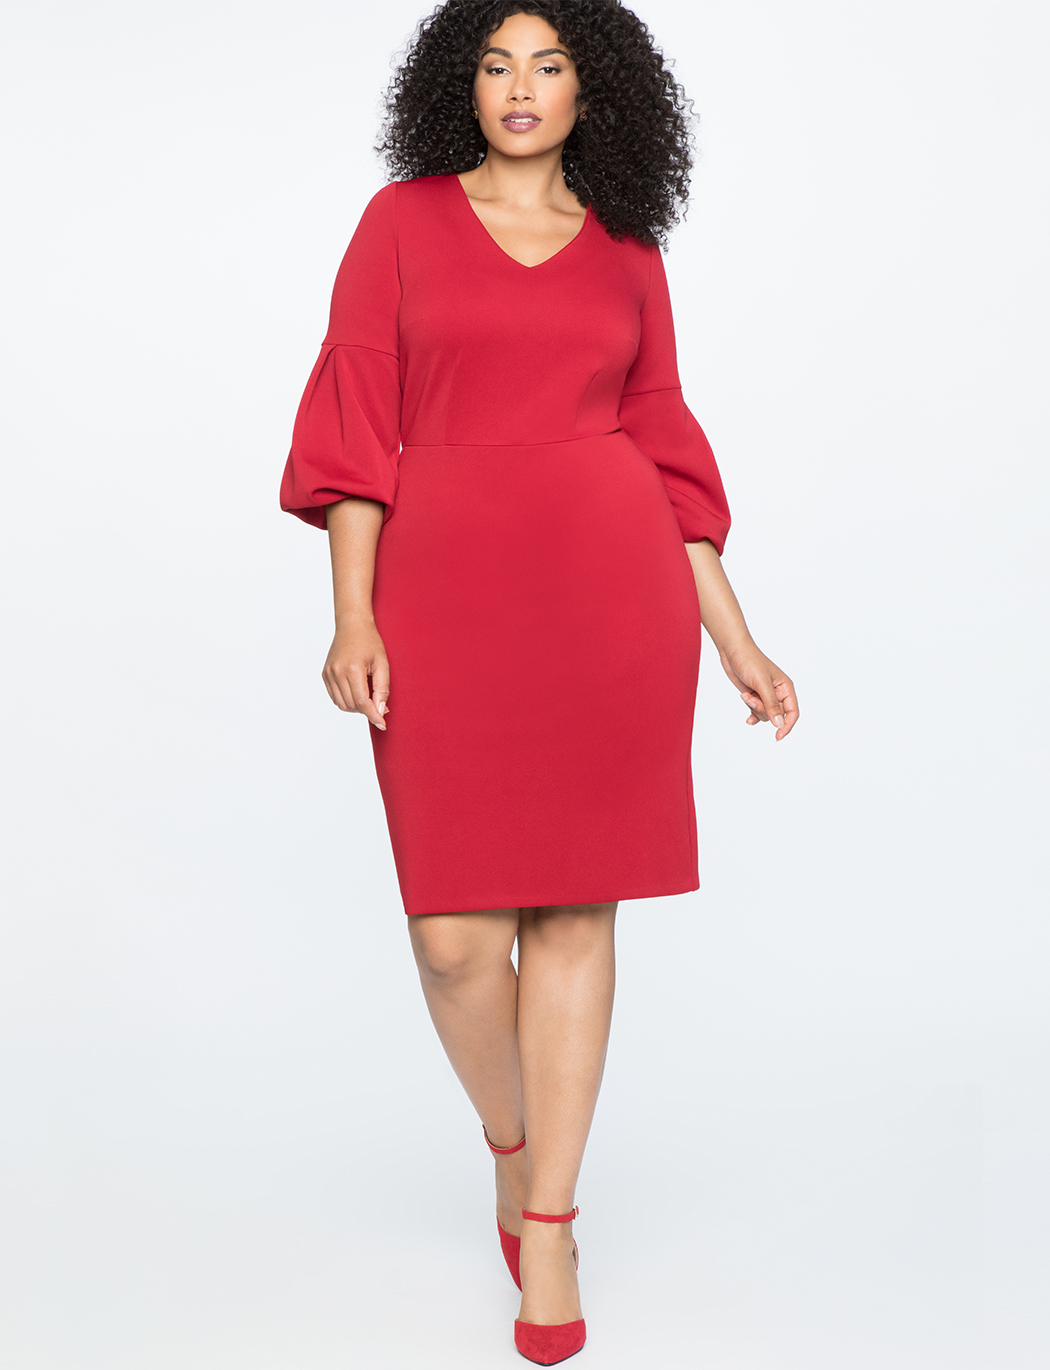 V-Neck Puff Sleeve Sheath Dress